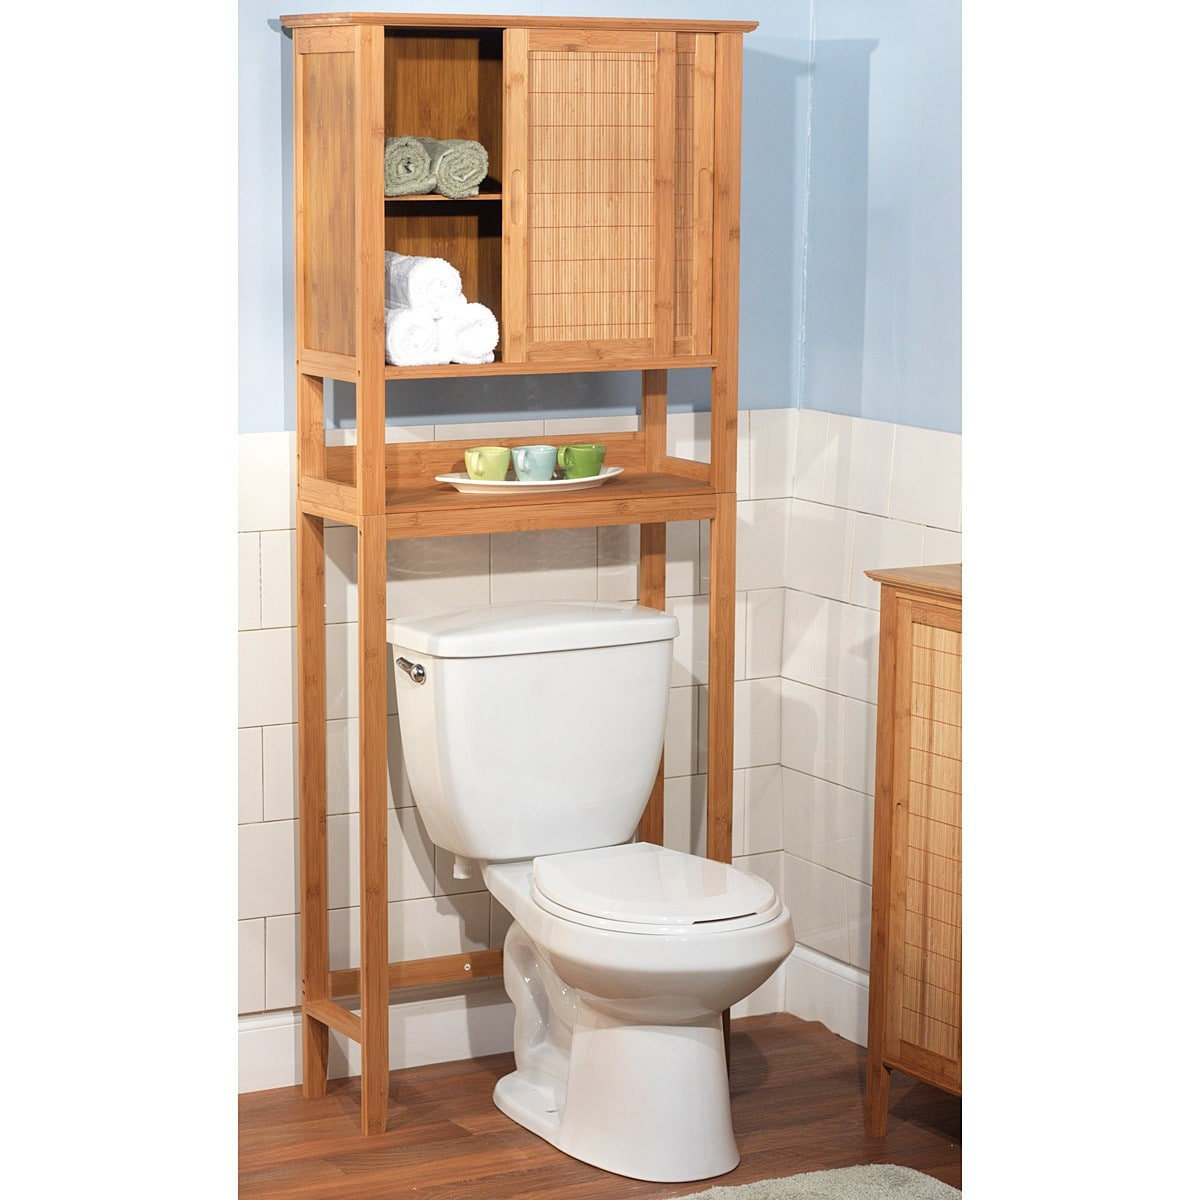 Simple Living Bamboo Space Saver Bamboo Space Saver Brown Bathroom Space Saver Toilet Storage Over Toilet Storage